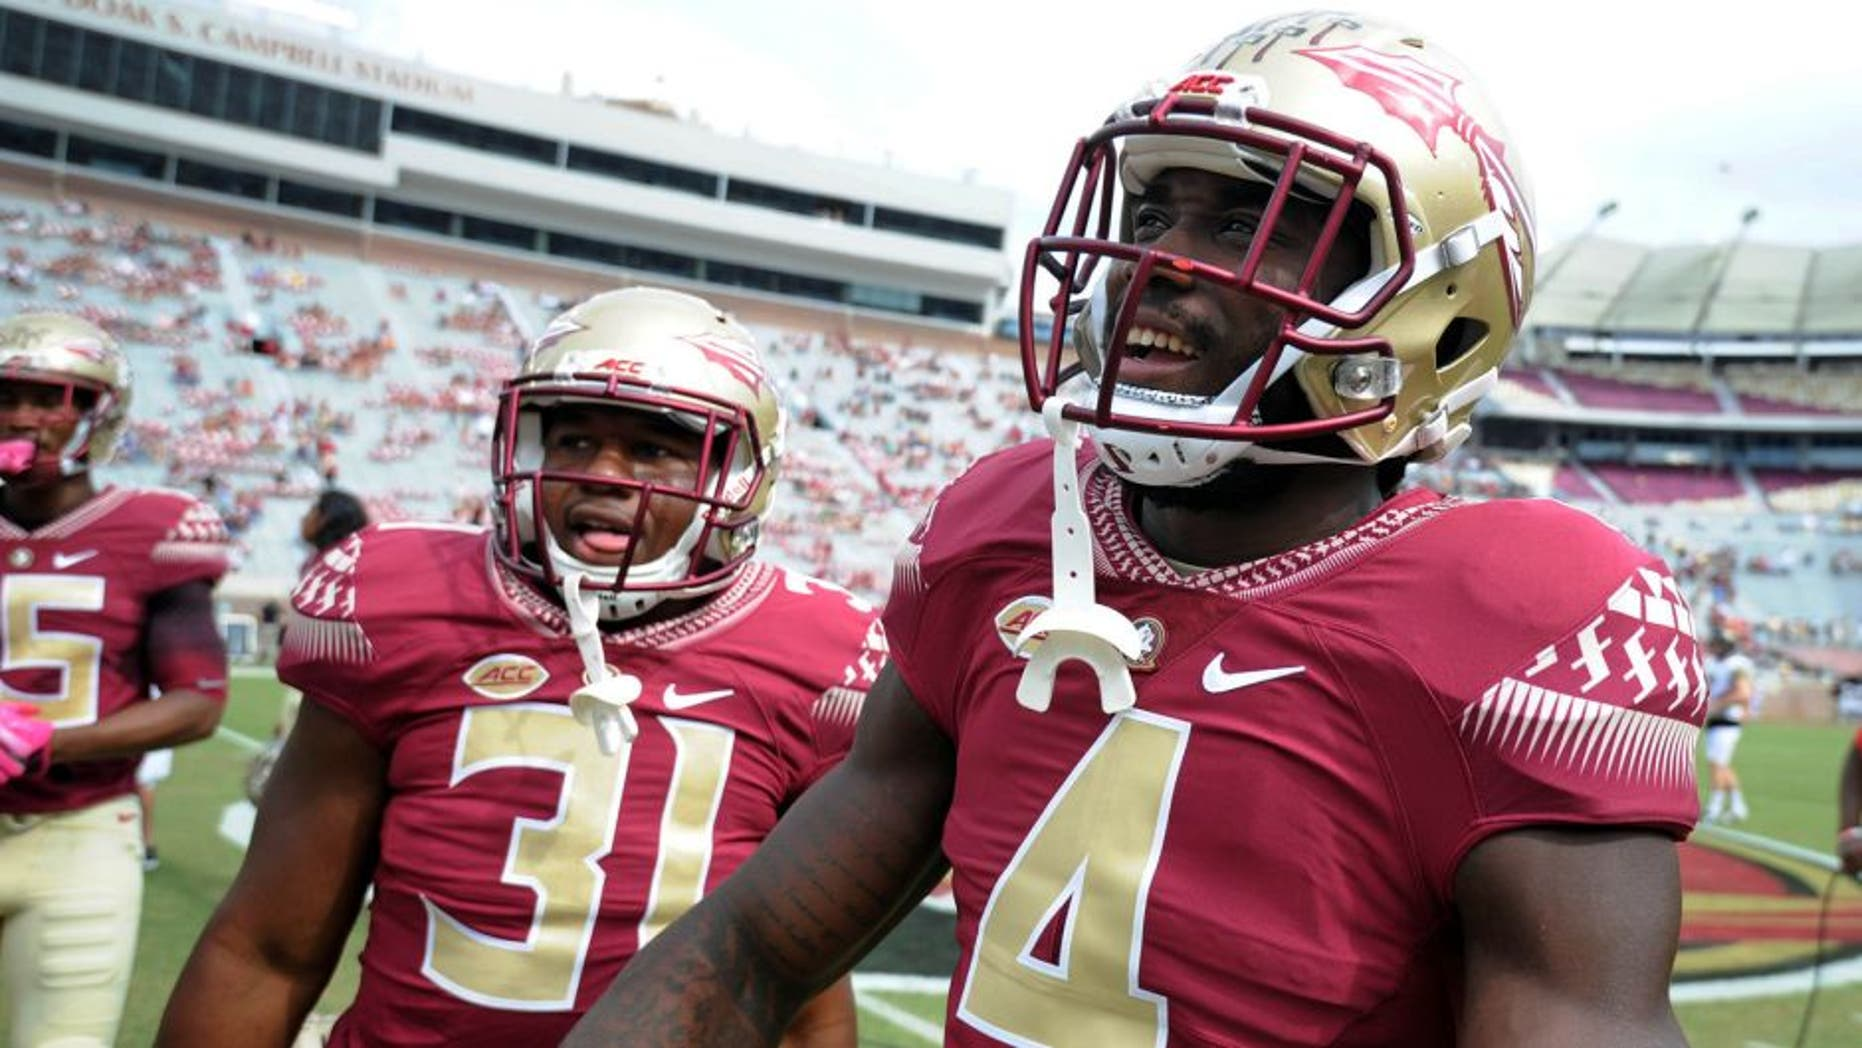 Oct 15, 2016; Tallahassee, FL, USA; Florida State Seminoles running back Dalvin Cook (4) before the game against the Wake Forest Demon Deacons at Doak Campbell Stadium. Mandatory Credit: Melina Vastola-USA TODAY Sports